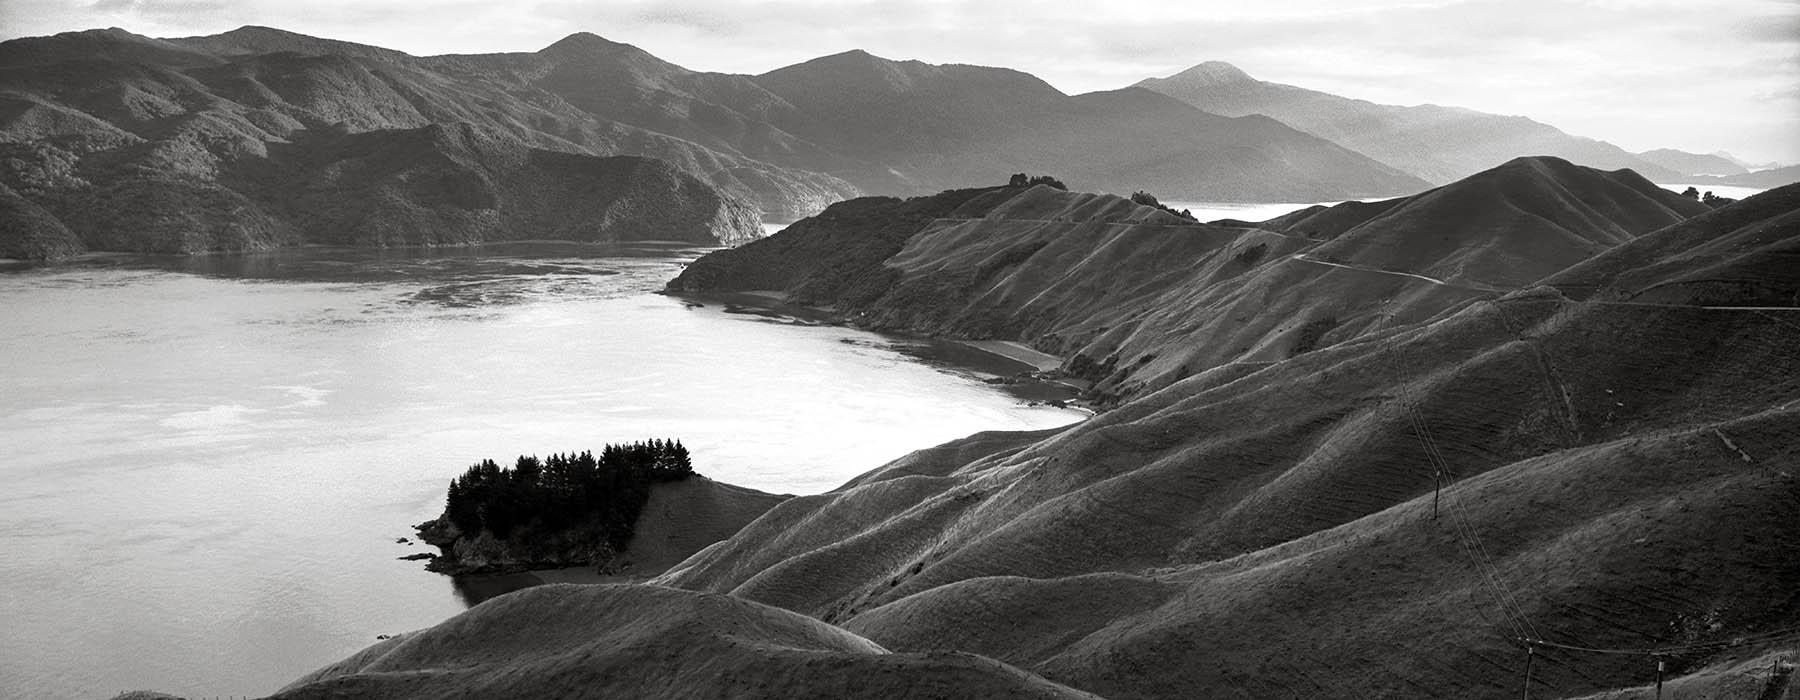 Black and white photograph of French Pass, Marlborough Sounds